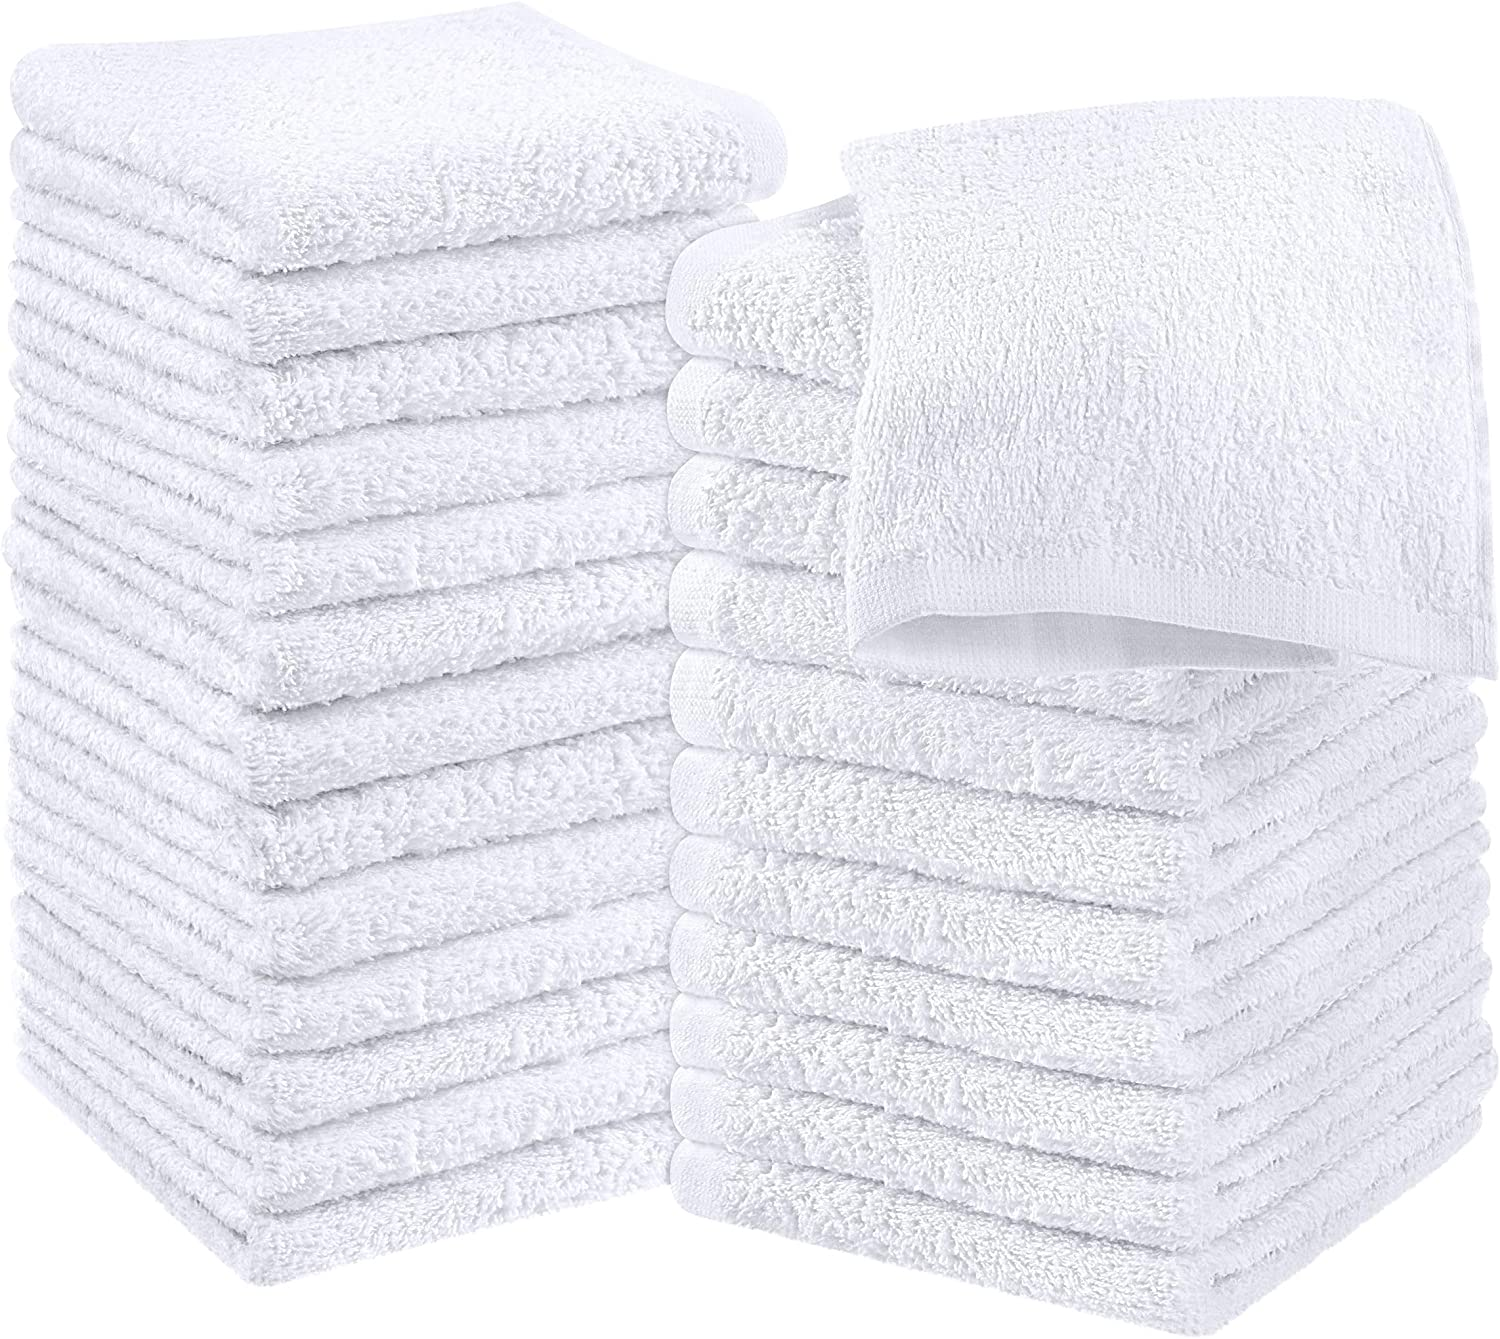 Amazon Com Utopia Towels Cotton White Washcloths Set Pack Of 24 100 Ring Spun Cotton Premium Quality Flannel Face Cloths Highly Absorbent And Soft Feel Fingertip Towels Home Kitchen